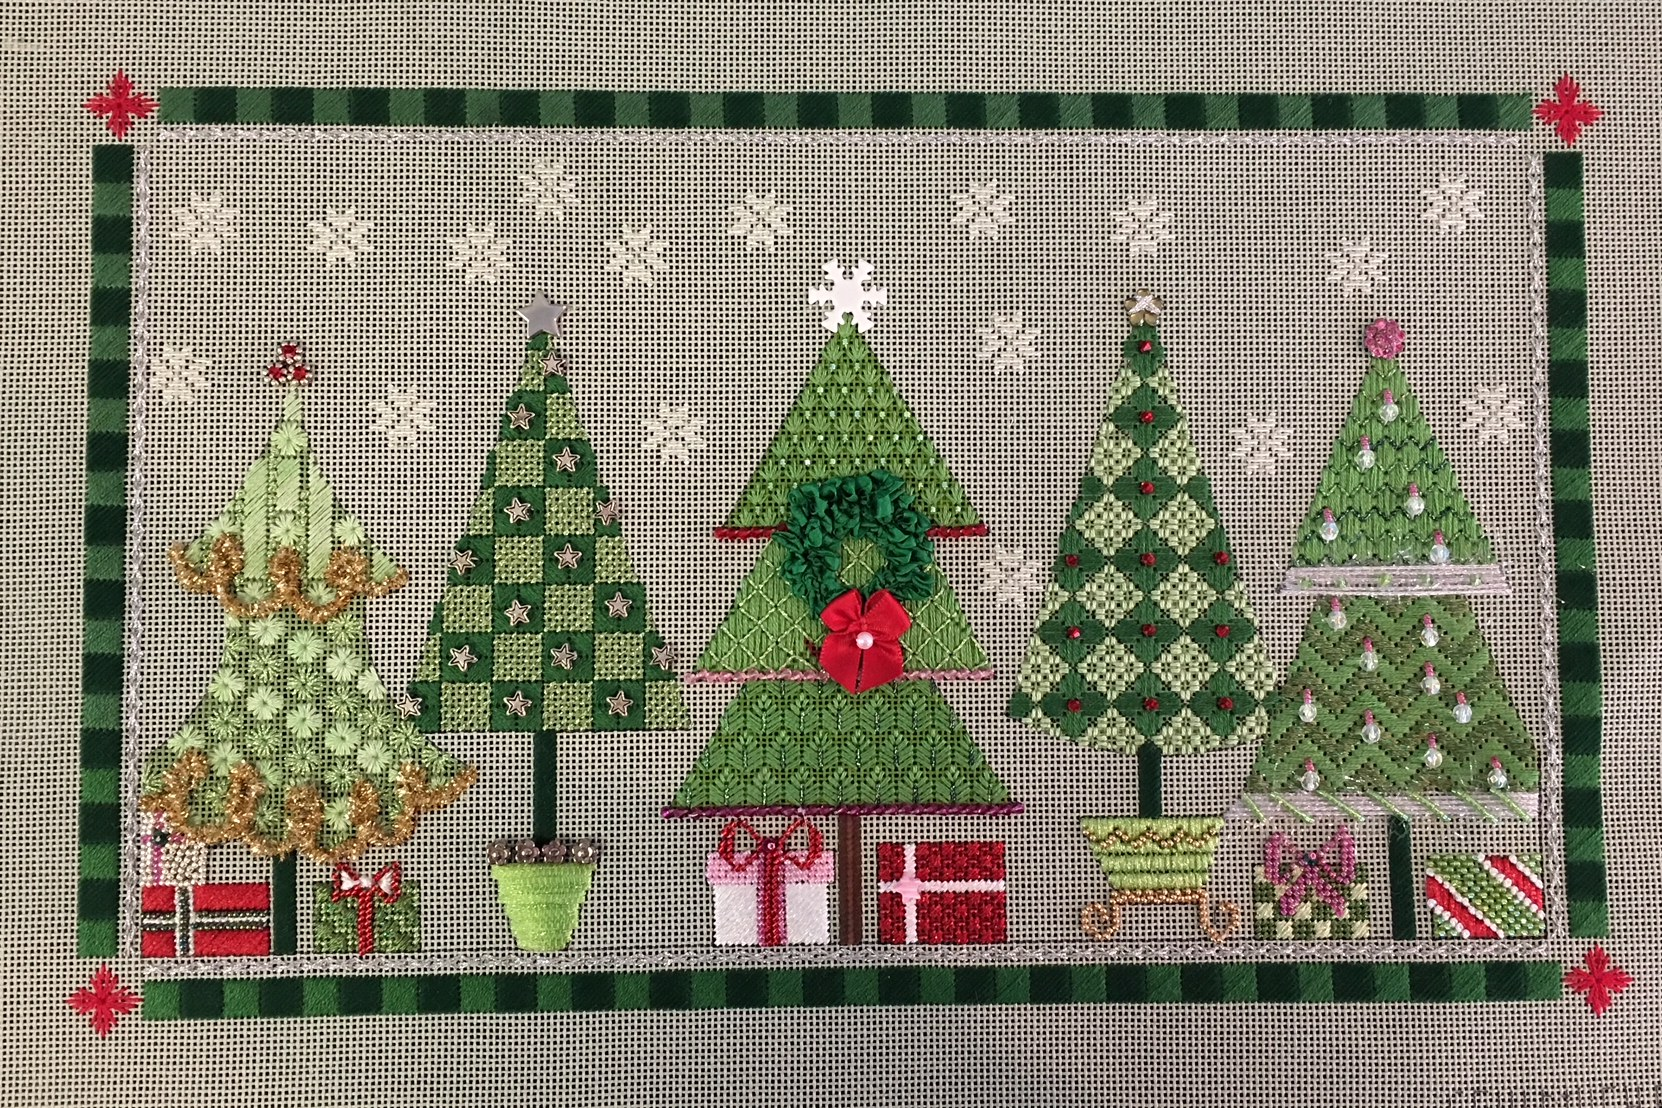 Christmas Trees by Sew Much Fun